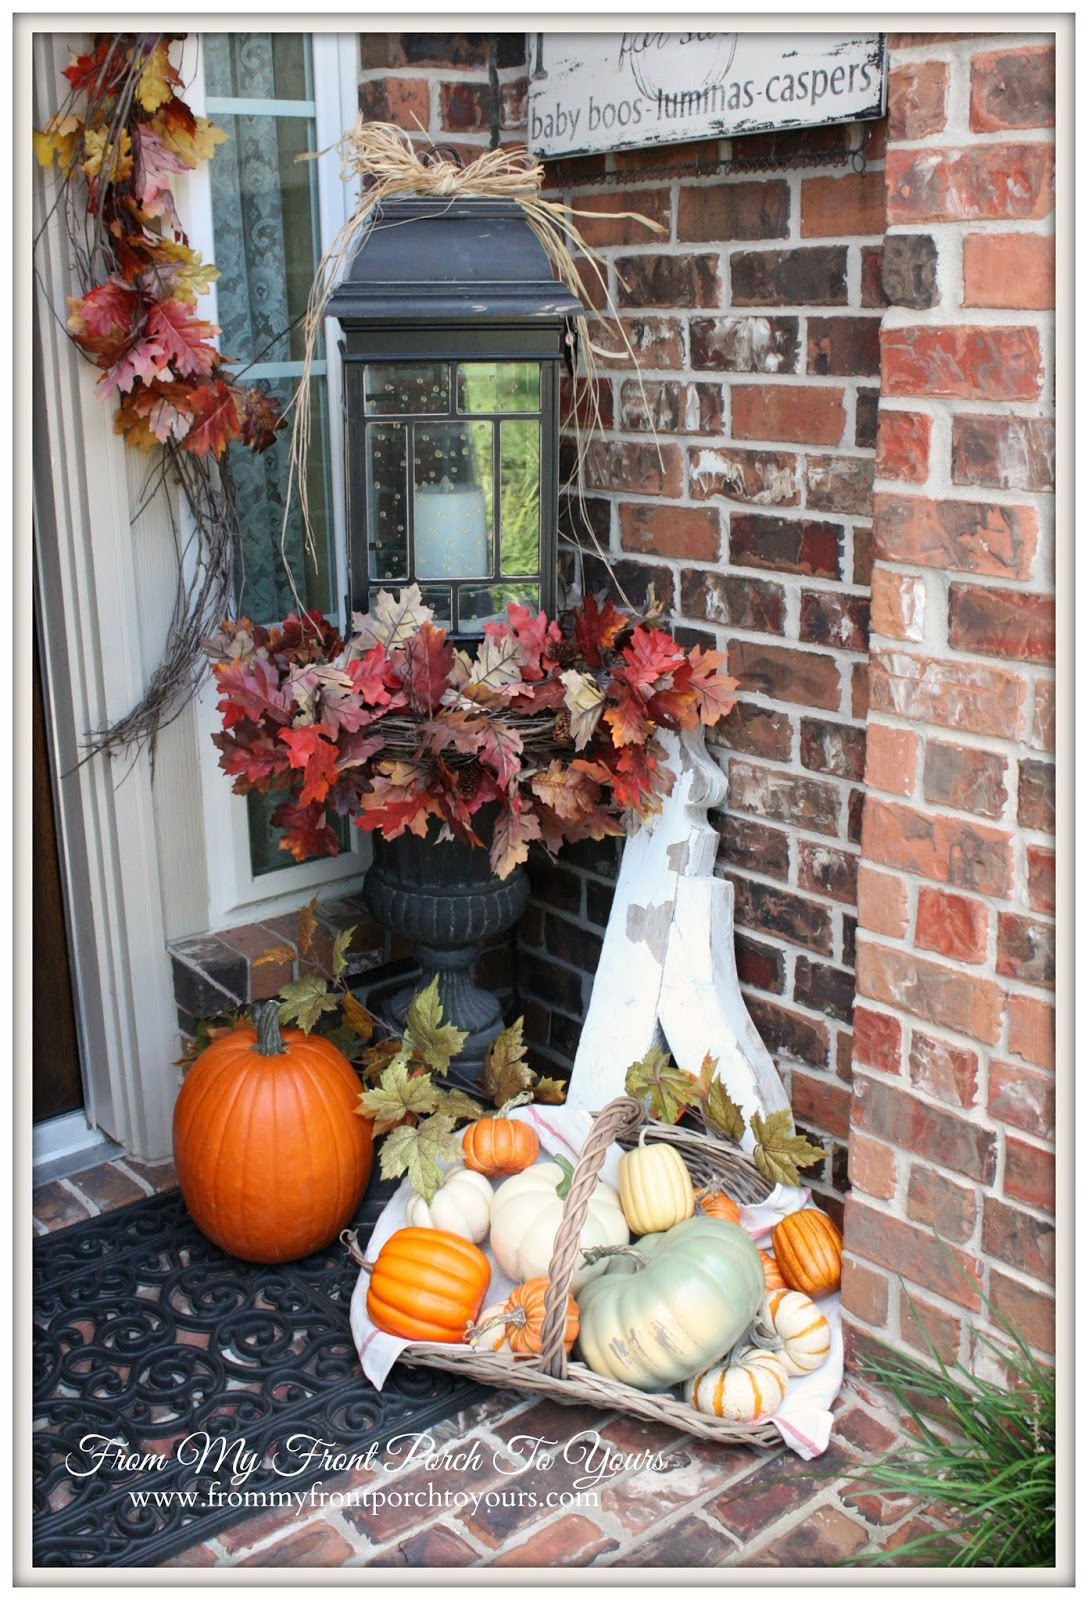 From My Front Porch To Yours- Falling For Fall Porch Party- Faux Pumpkins Mixed with Real Pumpkiins